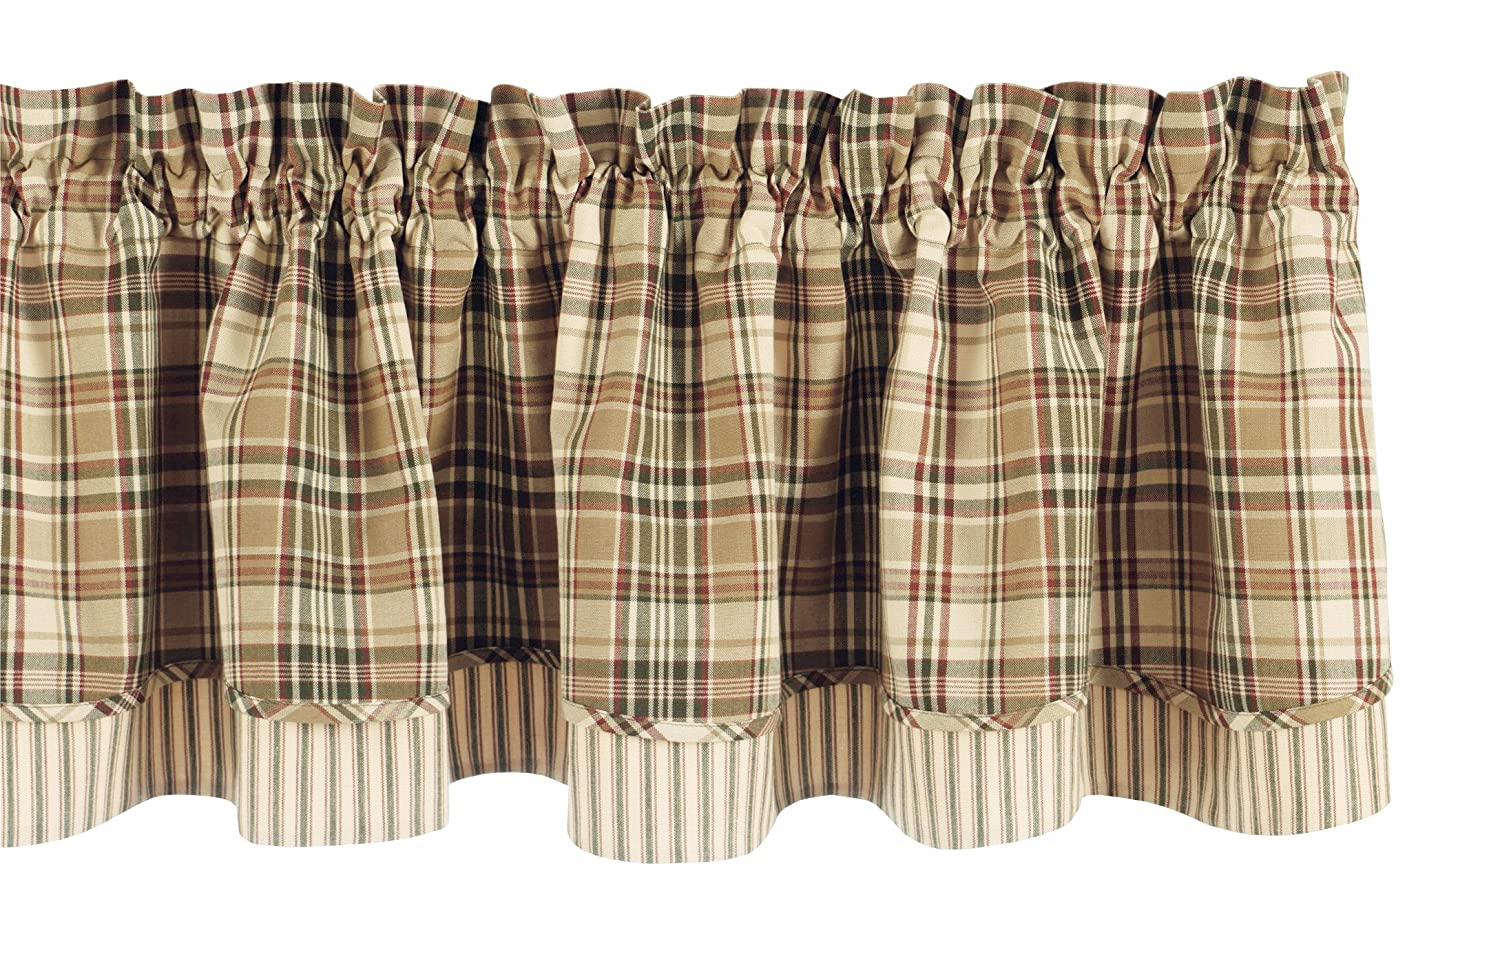 Park Designs Thyme Layer Valance, 72 X 16-Inch 611-471